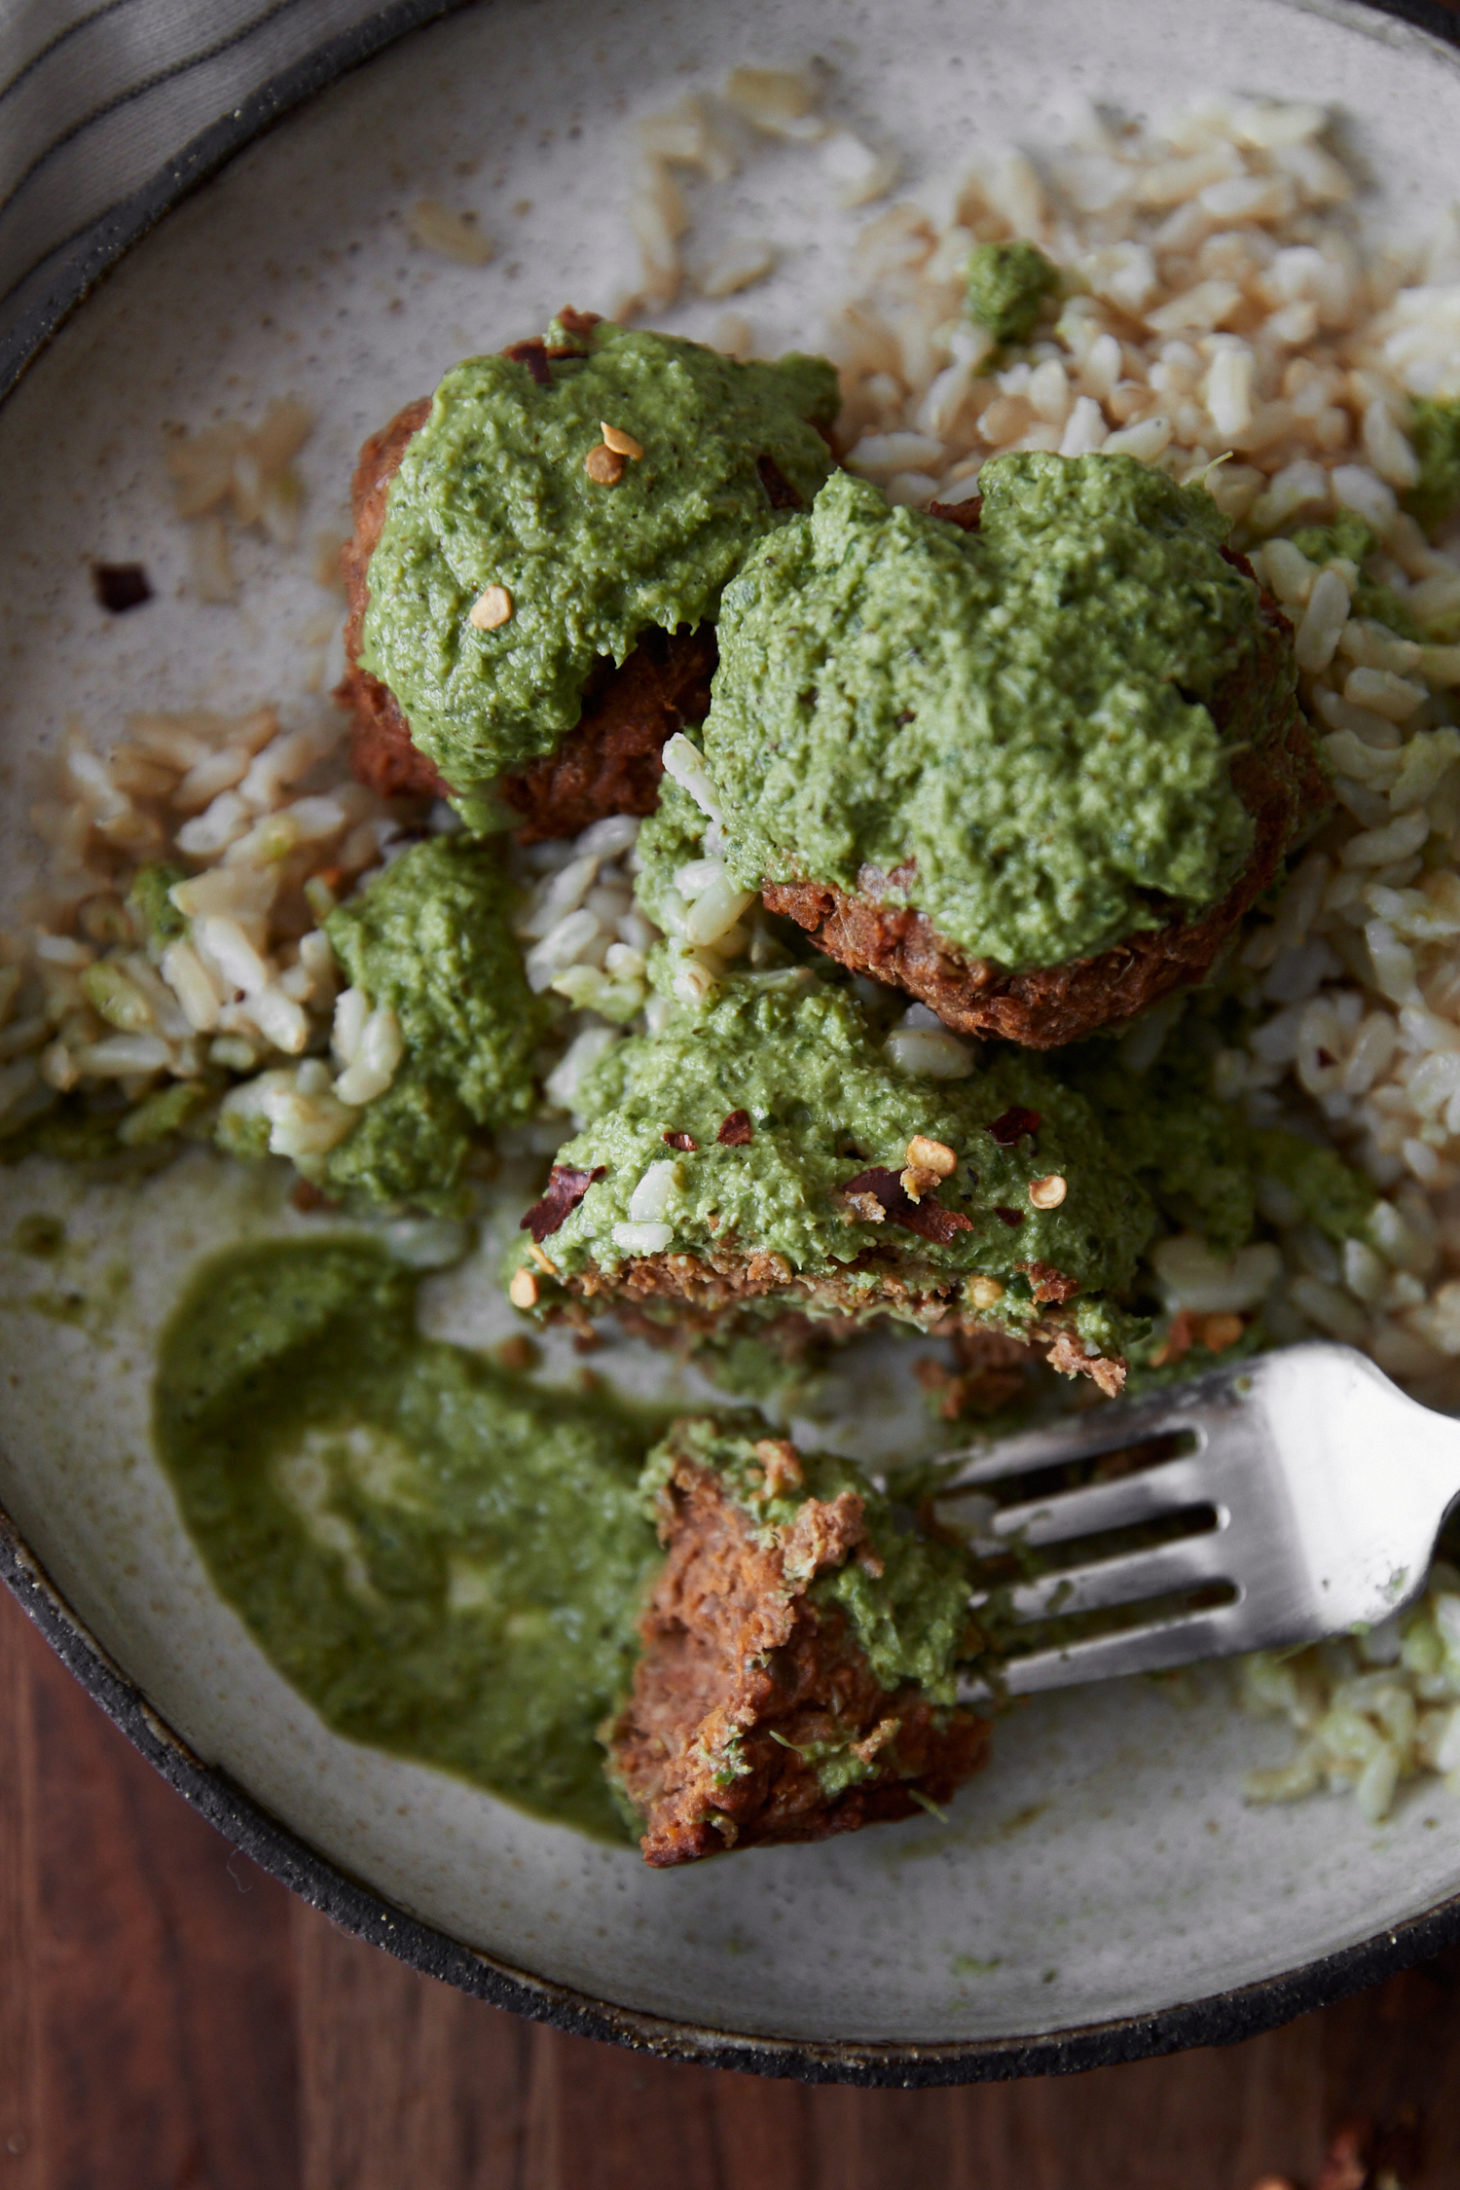 close-up of a cream bowl with green broccoli pesto with lentil bites and rice.